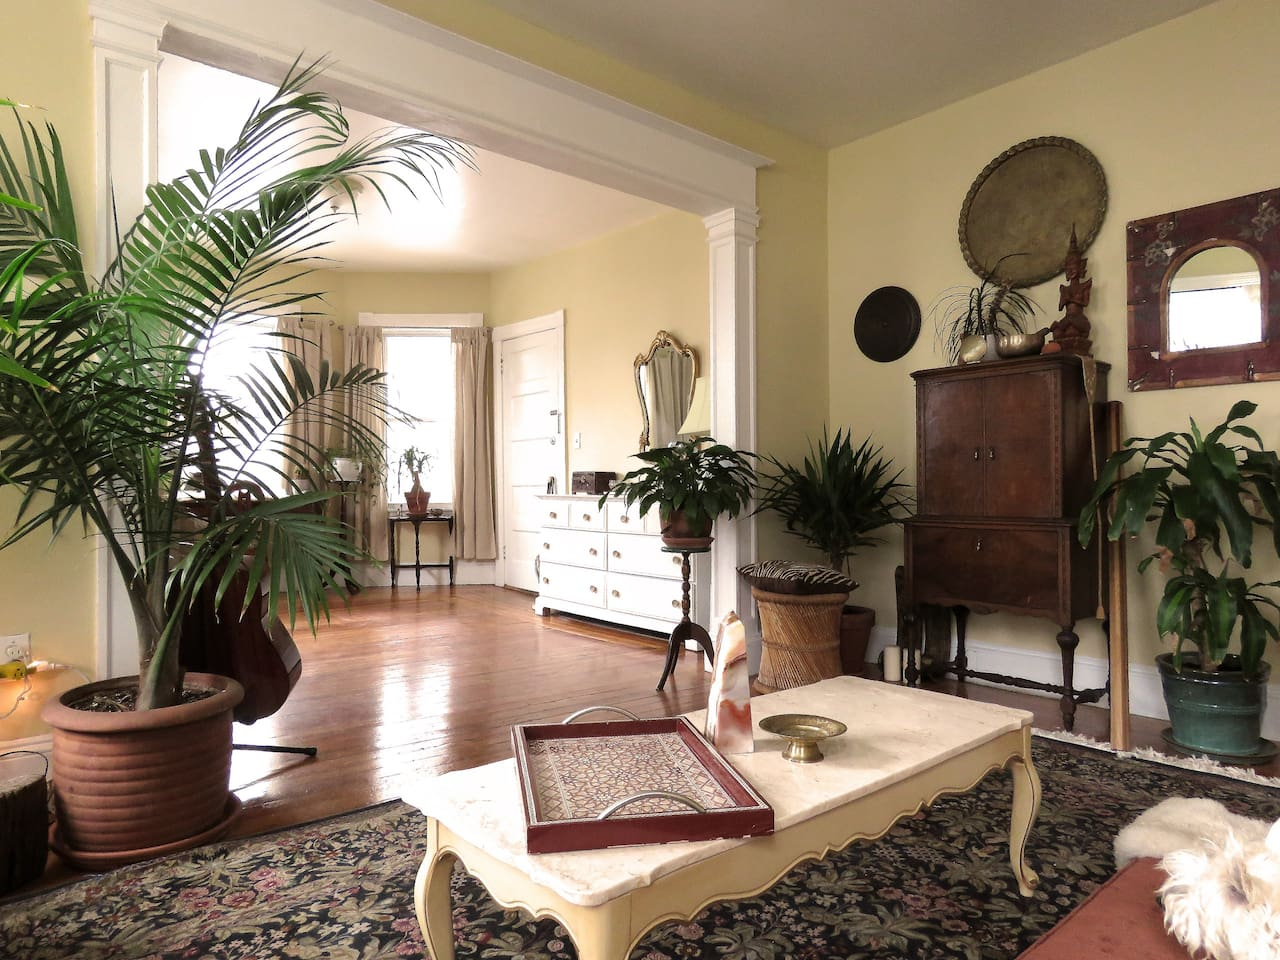 Double parlor living room